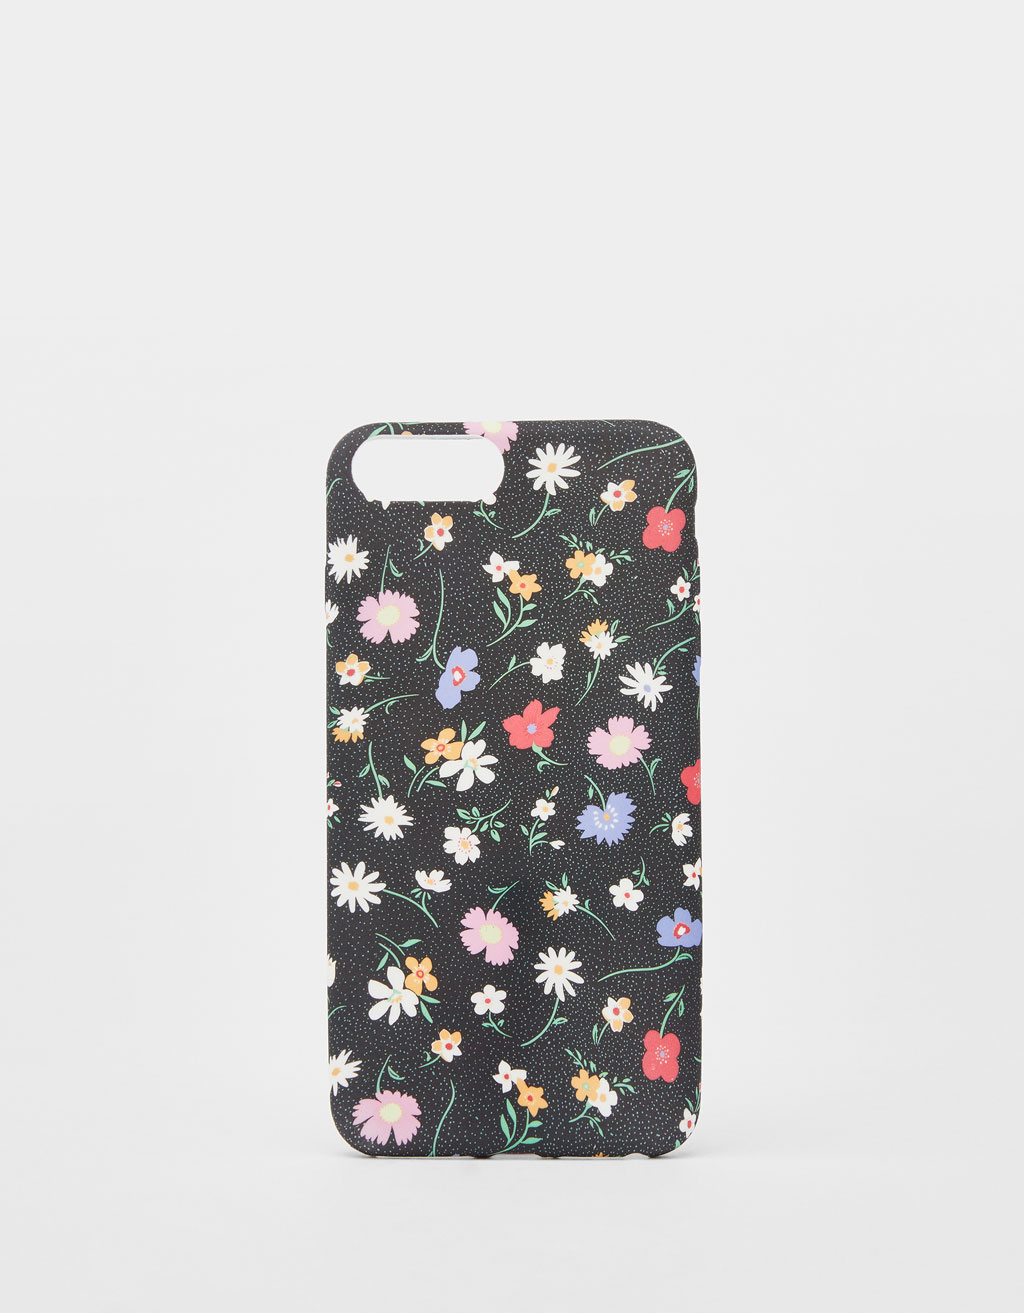 Floral iPhone 6 Plus / 7 Plus / 8 Plus case